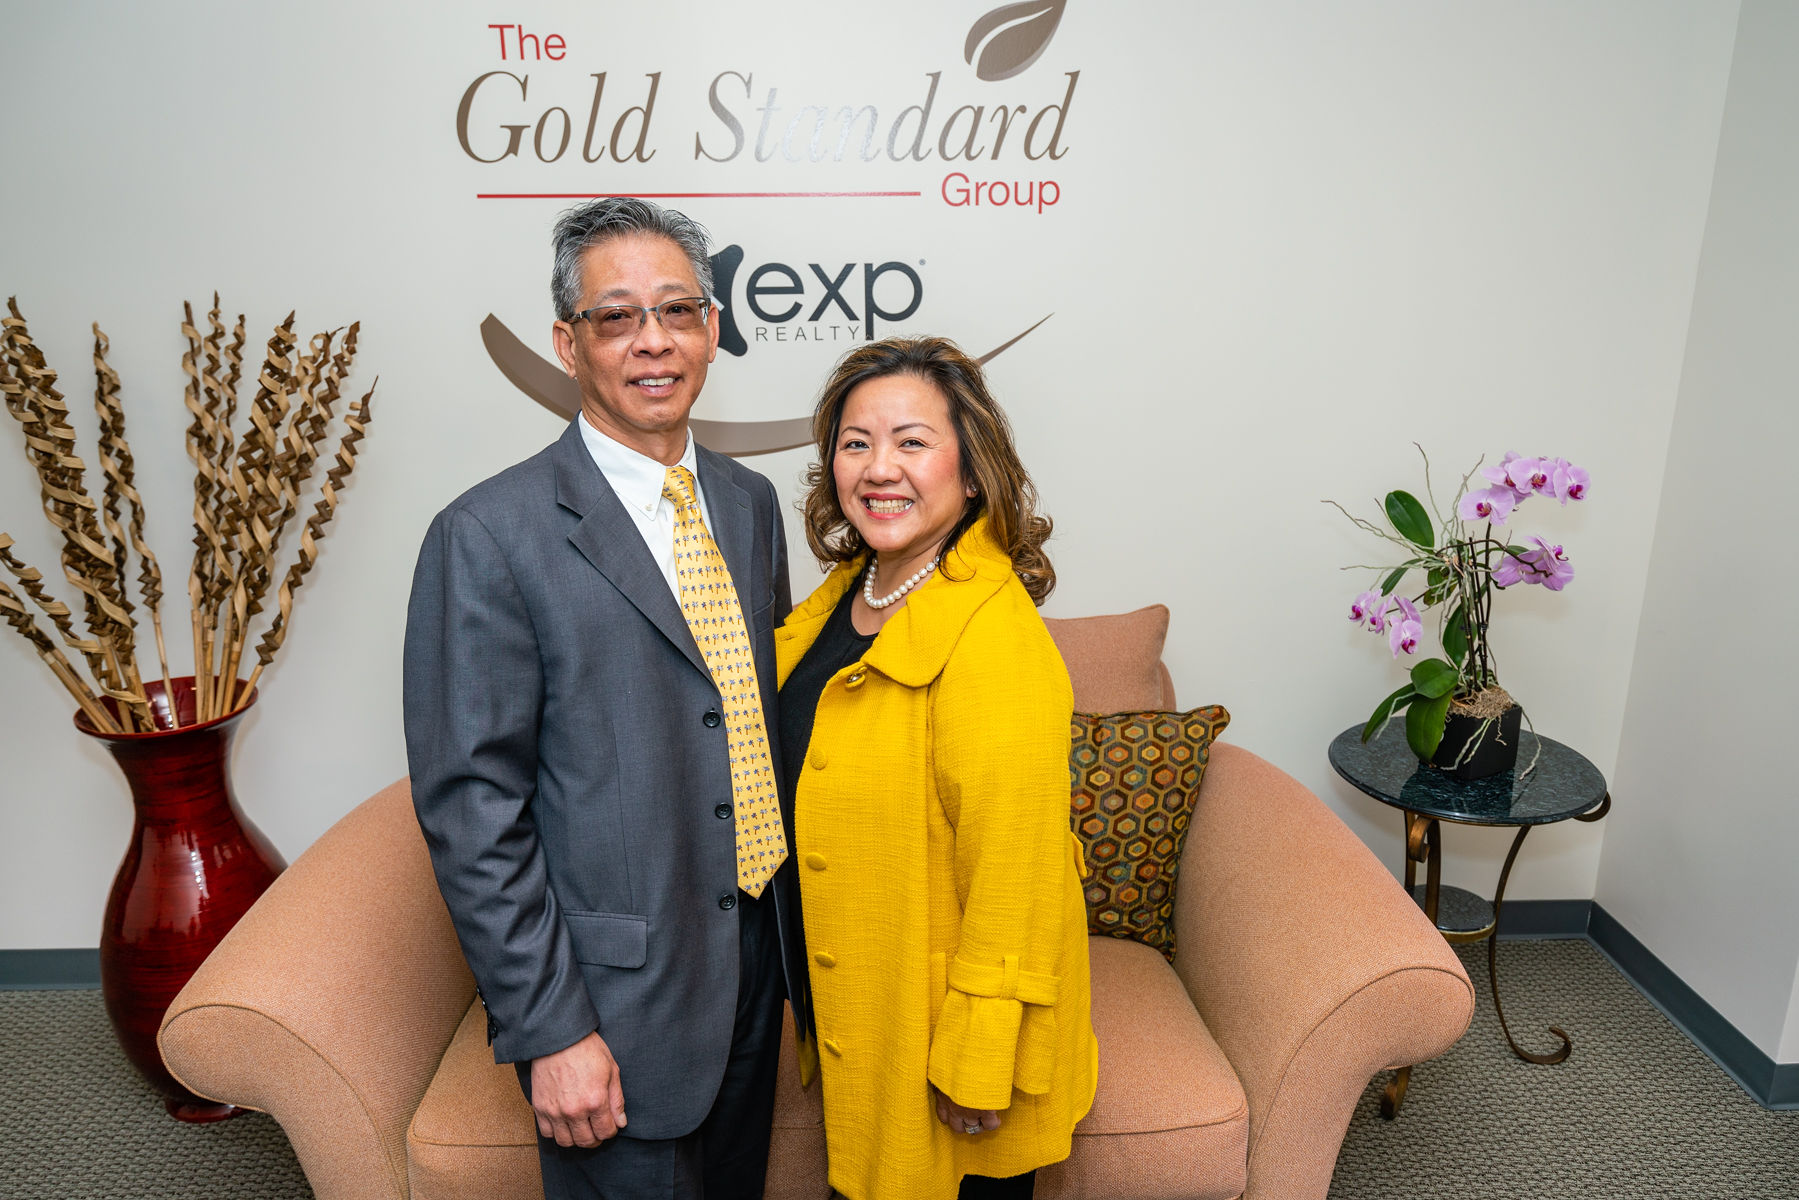 The Gold Standard Group with eXp Realty reviews | Real Estate Services at 9211 Corporate Blvd - Rockville MD